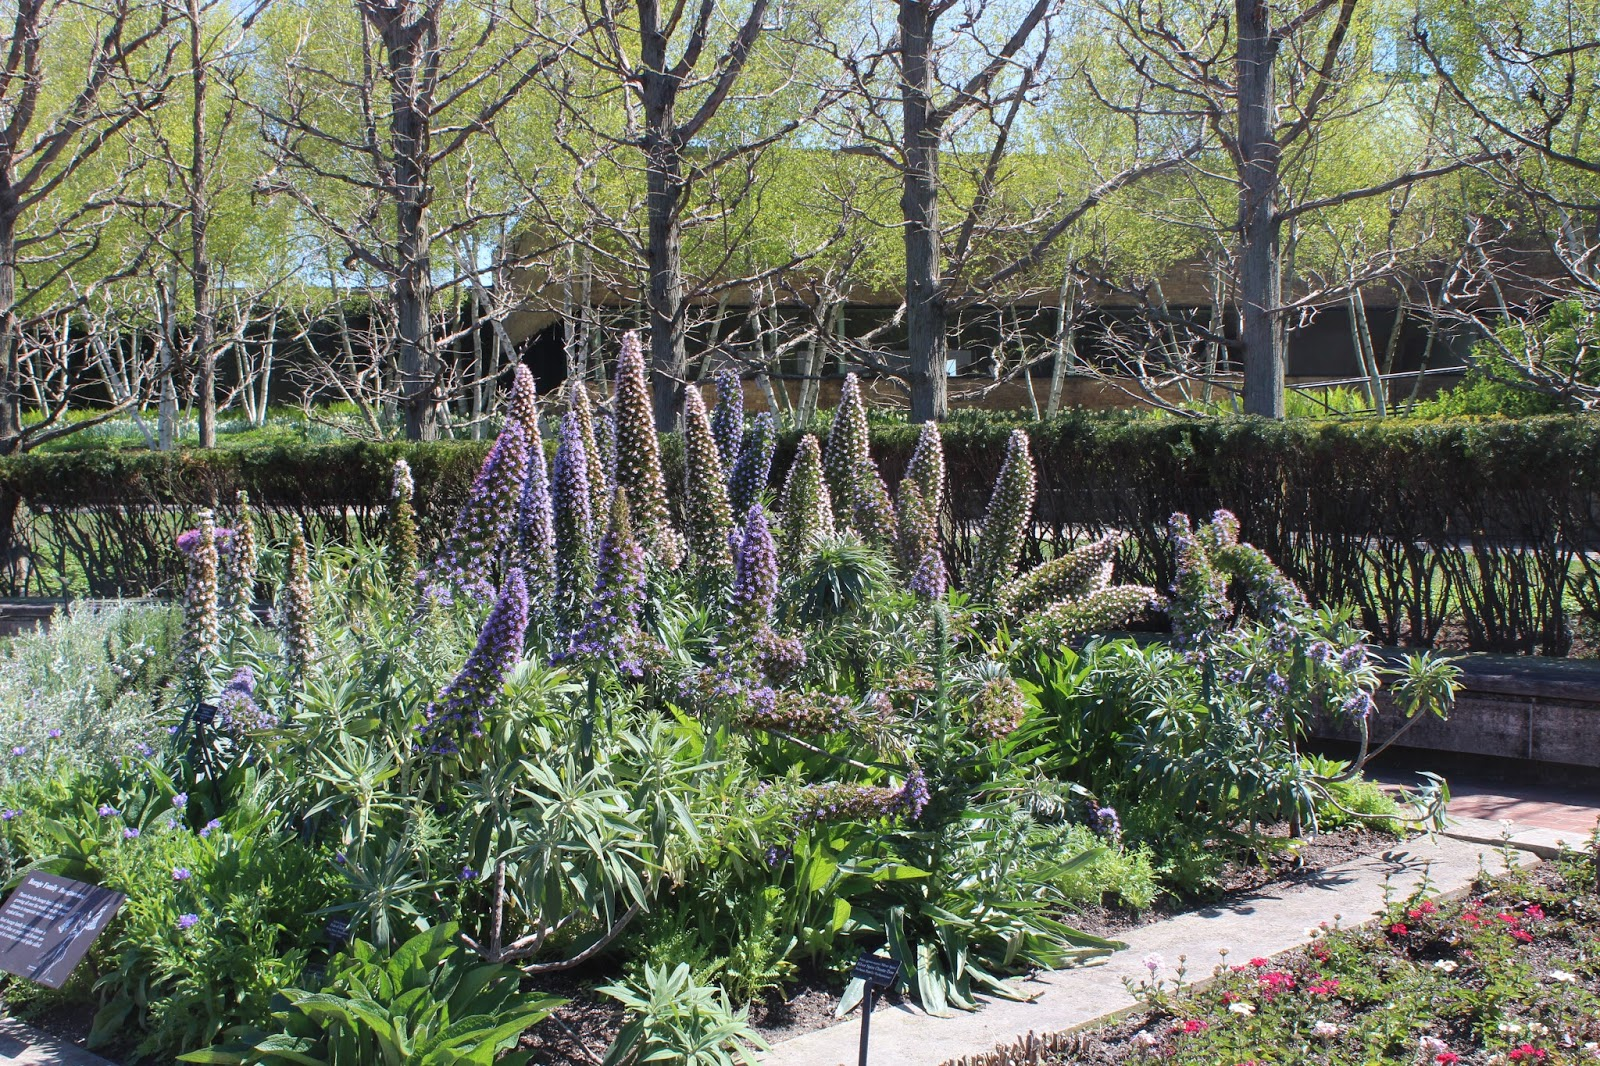 mears garden may 14 2017 we are leaving spring behind